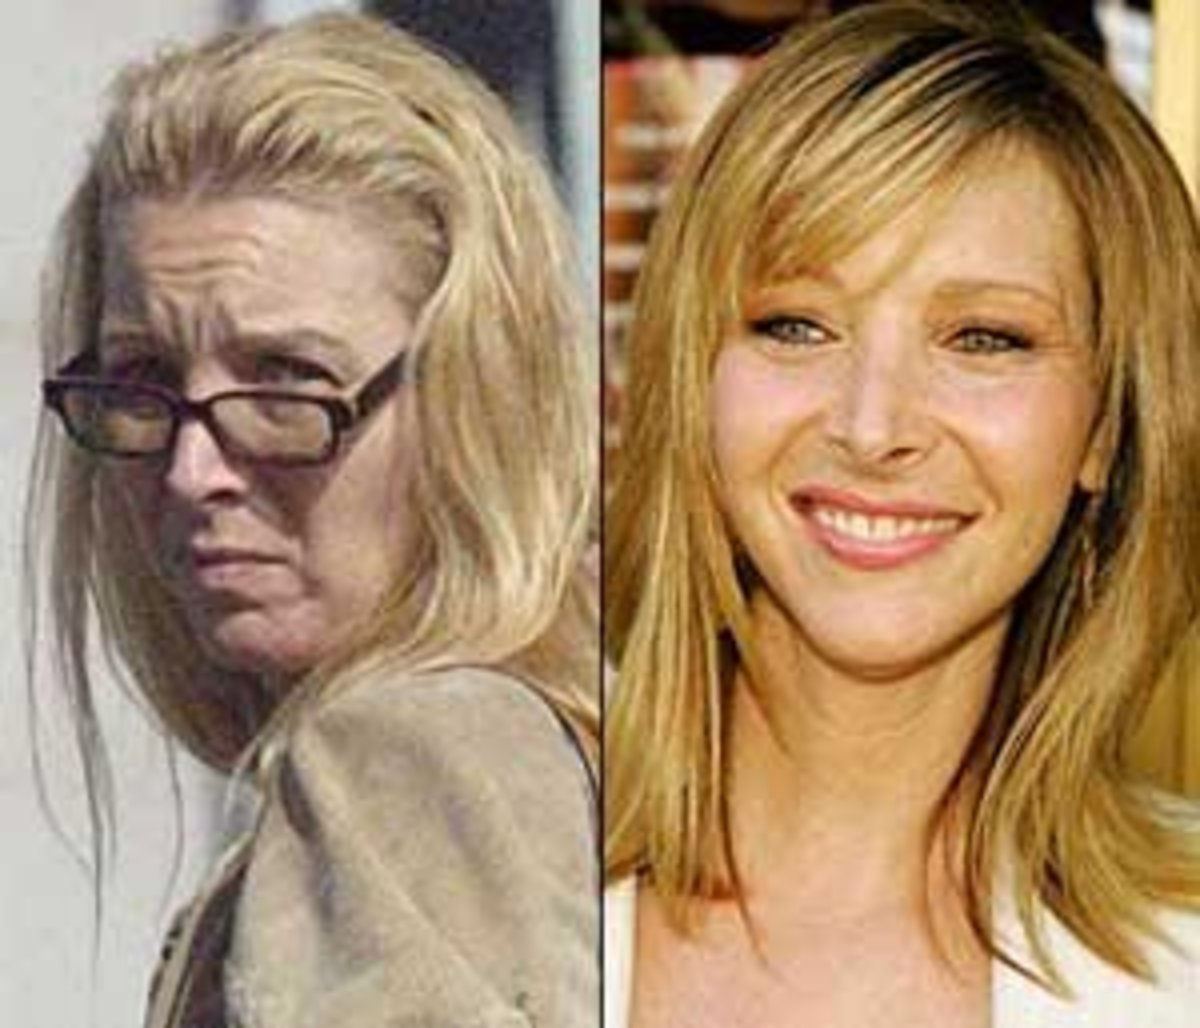 Lisa Kudrow looks like any woman you could pass on the street.